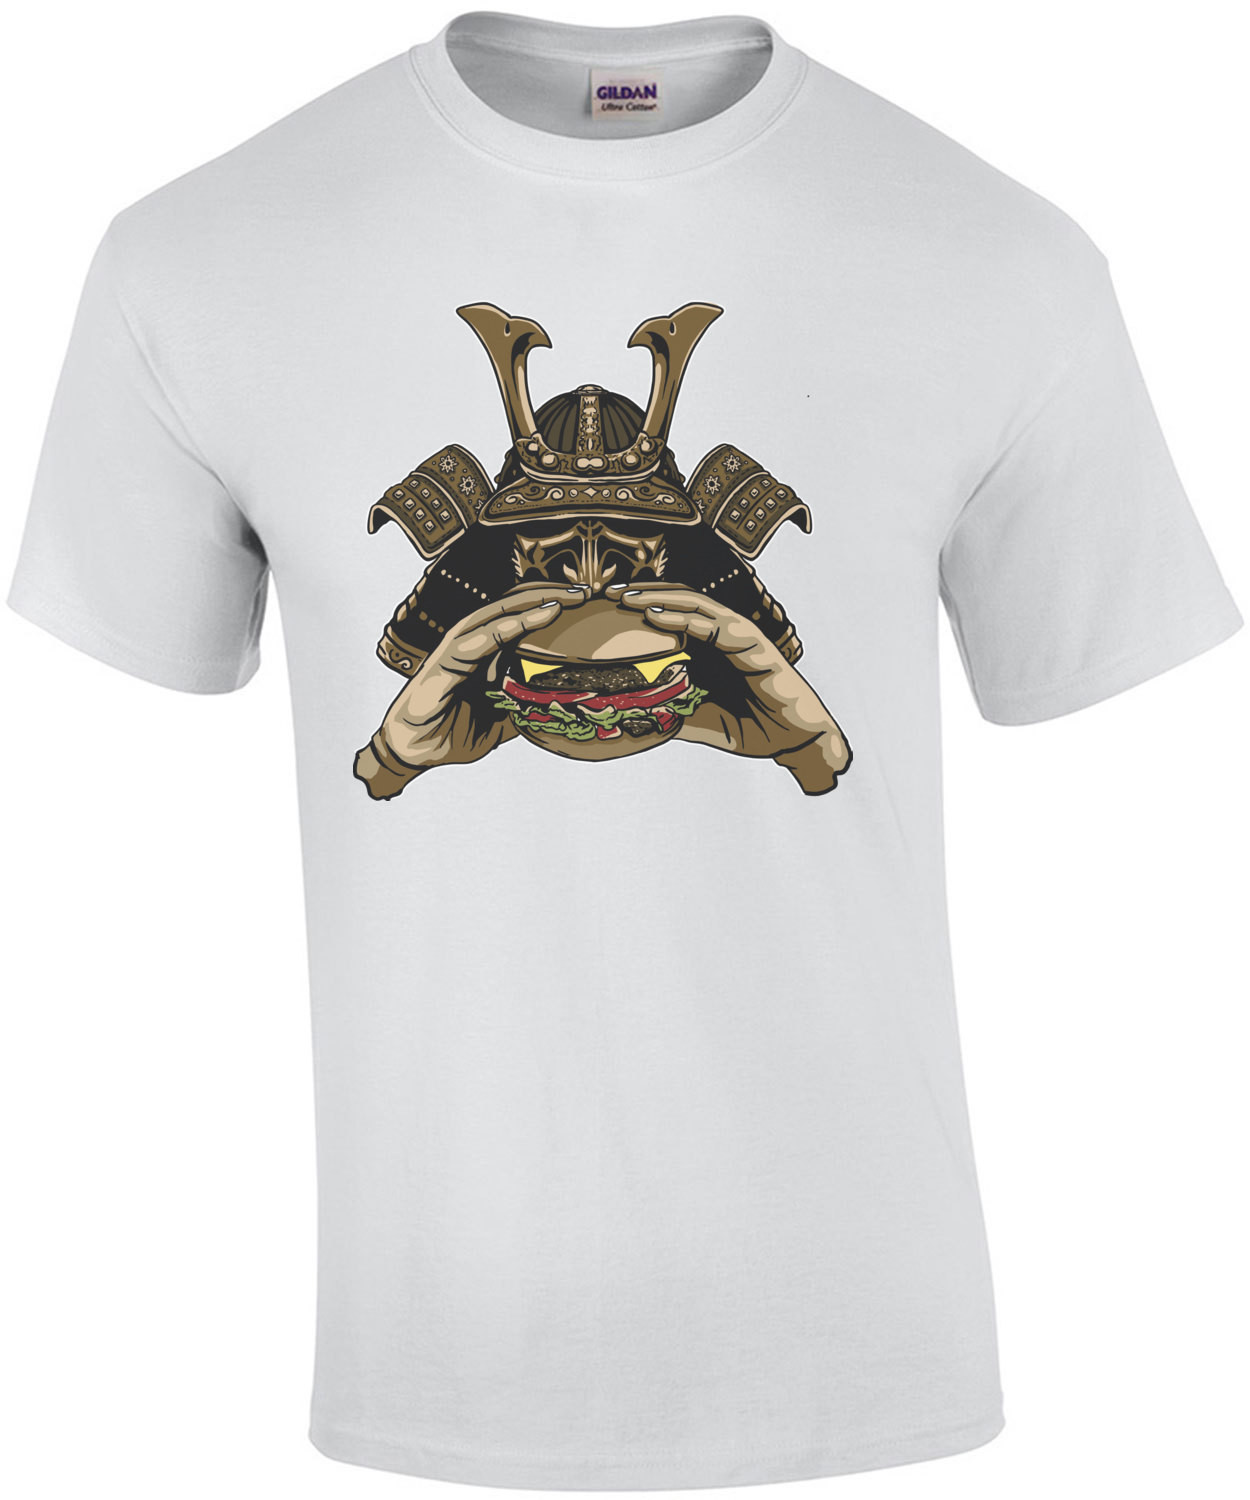 Samurai Eating Cheeseburger T-Shirt